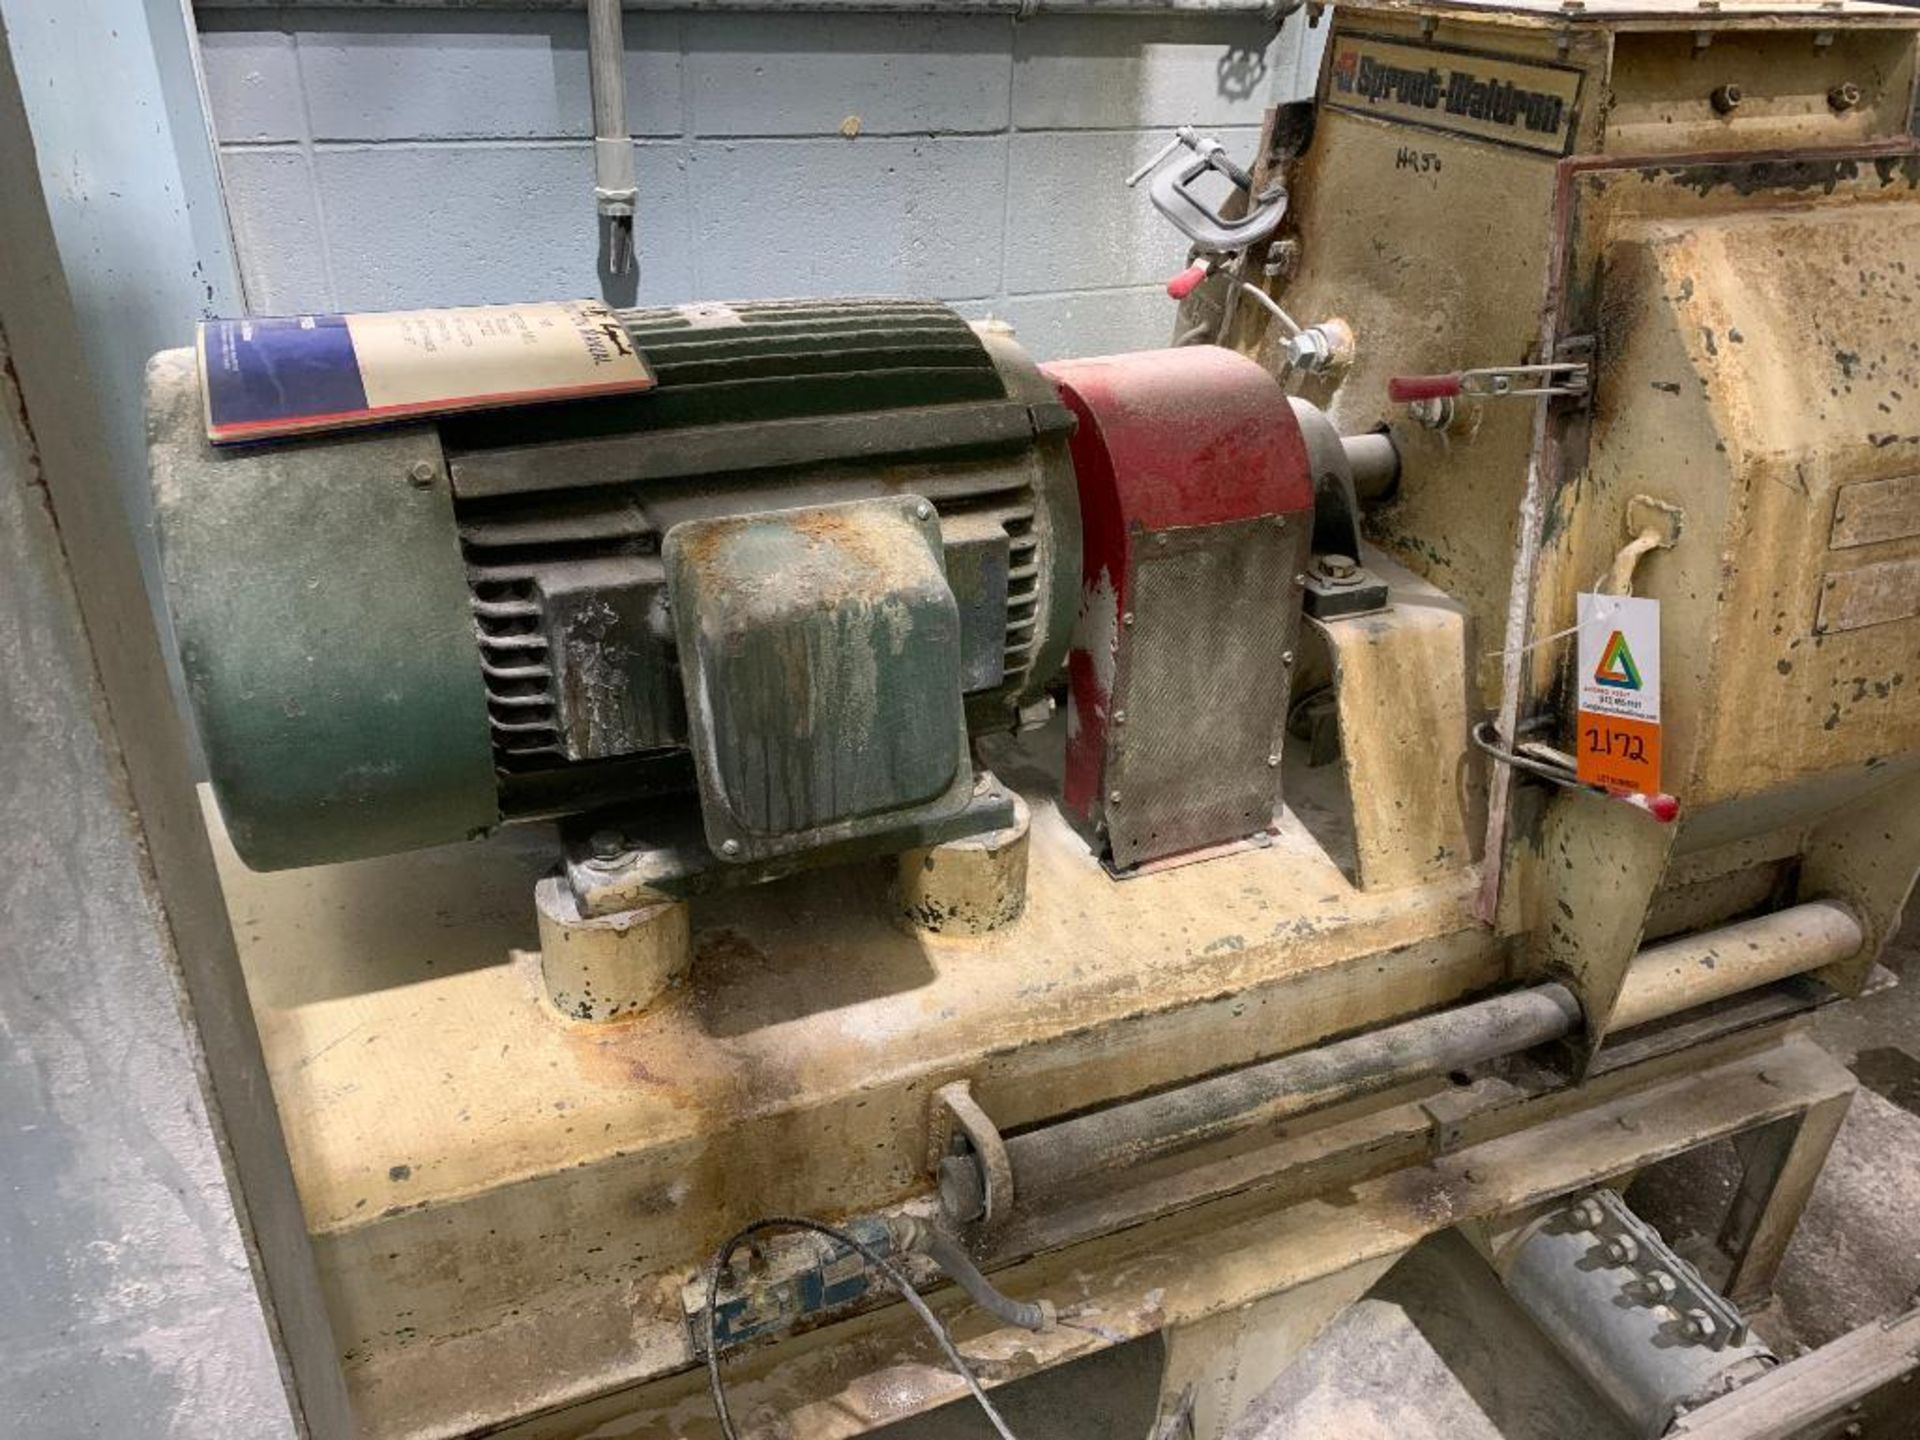 Sprout-Waldron hammermill, 60 hp